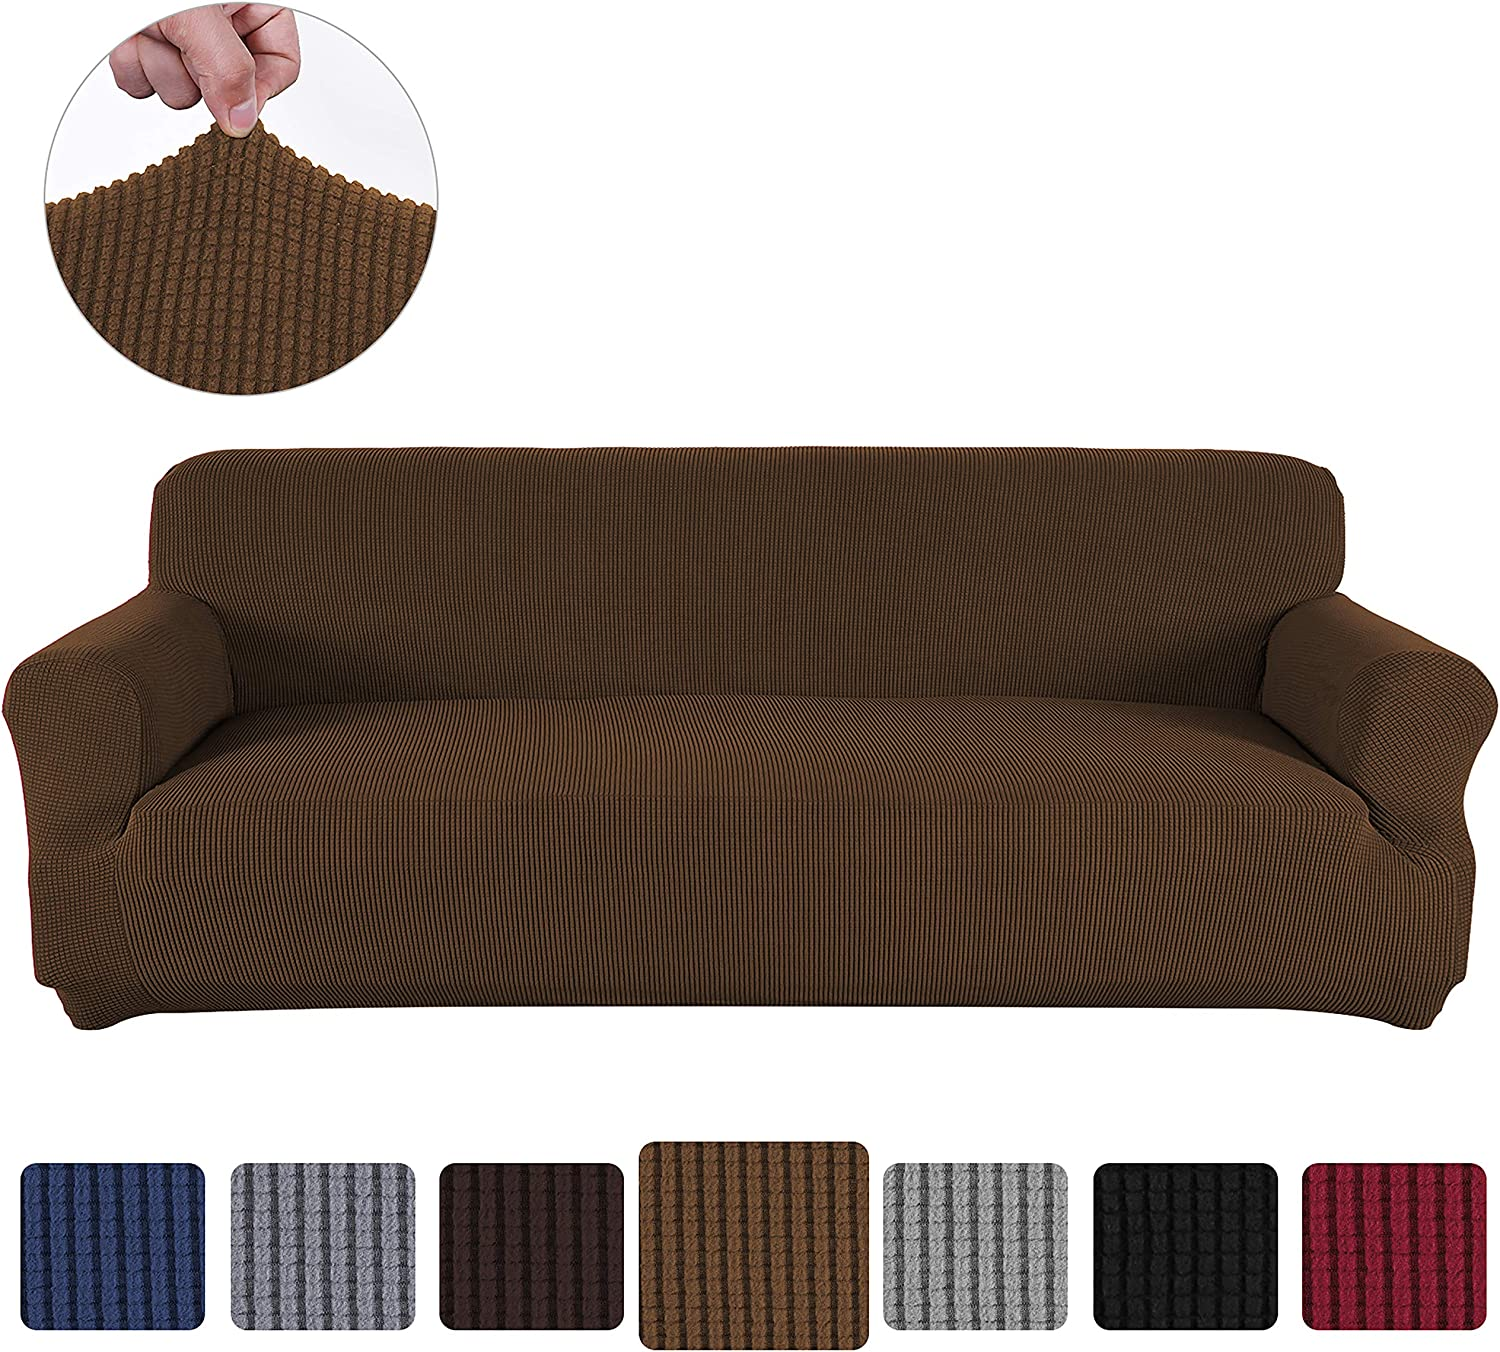 Obstal Stretch Spandex Sofa Cover, 3 Seat Couch Covers for Living Room, Anti-Slip Sofa Slipcover with Elastic Bottom, Sofa Couch Coverings Furniture Protector for Dogs, Cats, Pets, and Kids